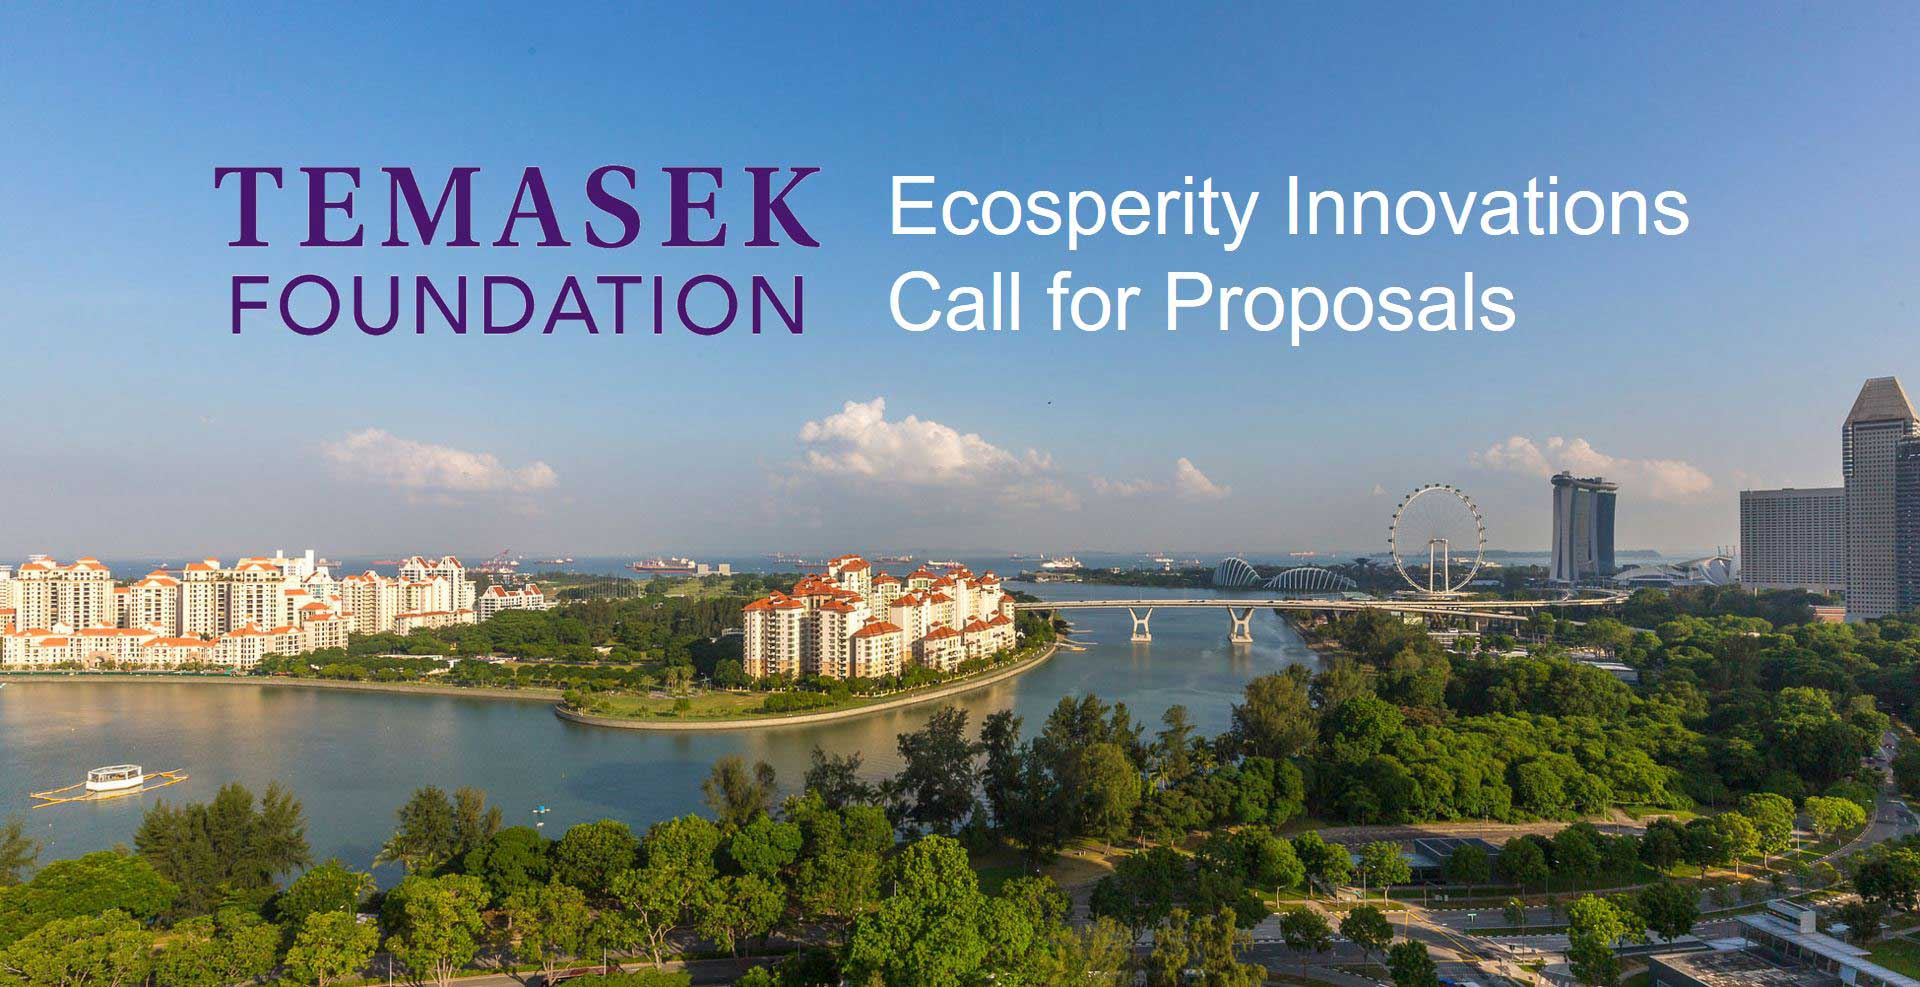 Temasek Foundation Eighth Ecosperity Innovations Call for Proposals